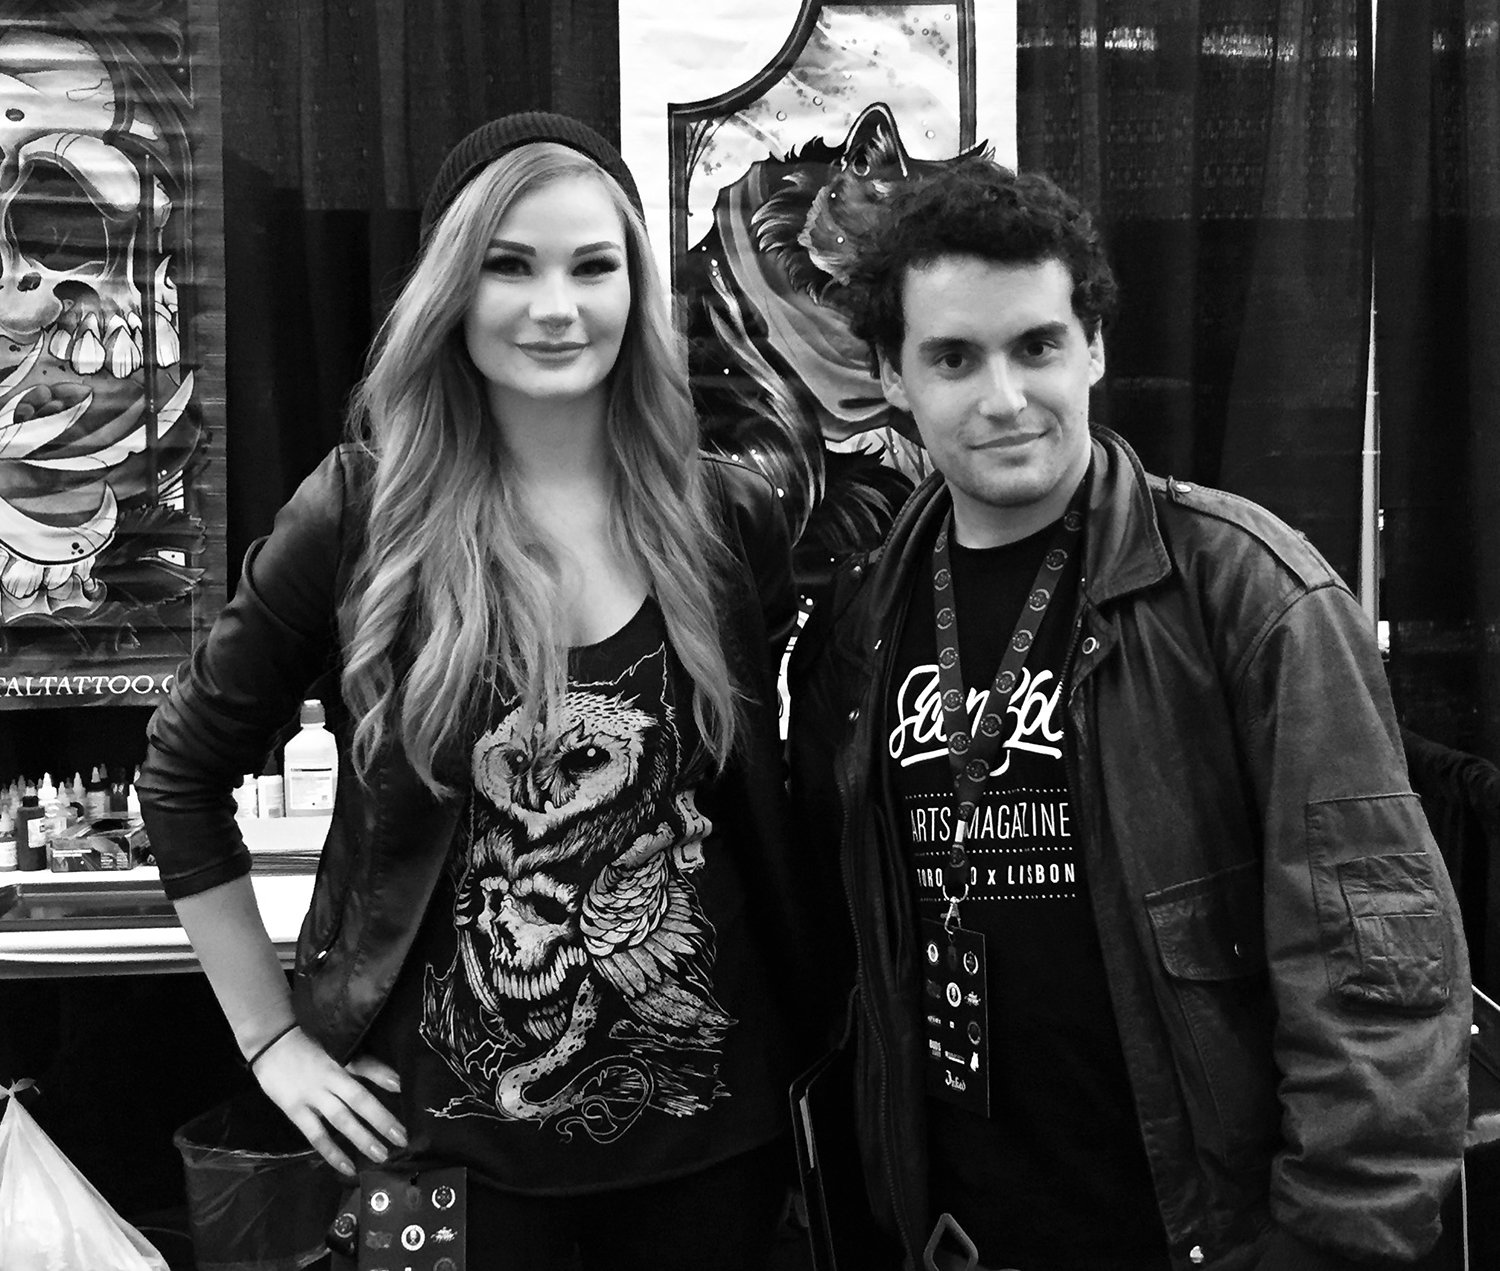 autumn dancer and tony carter at tattoo convention, victoria, canada